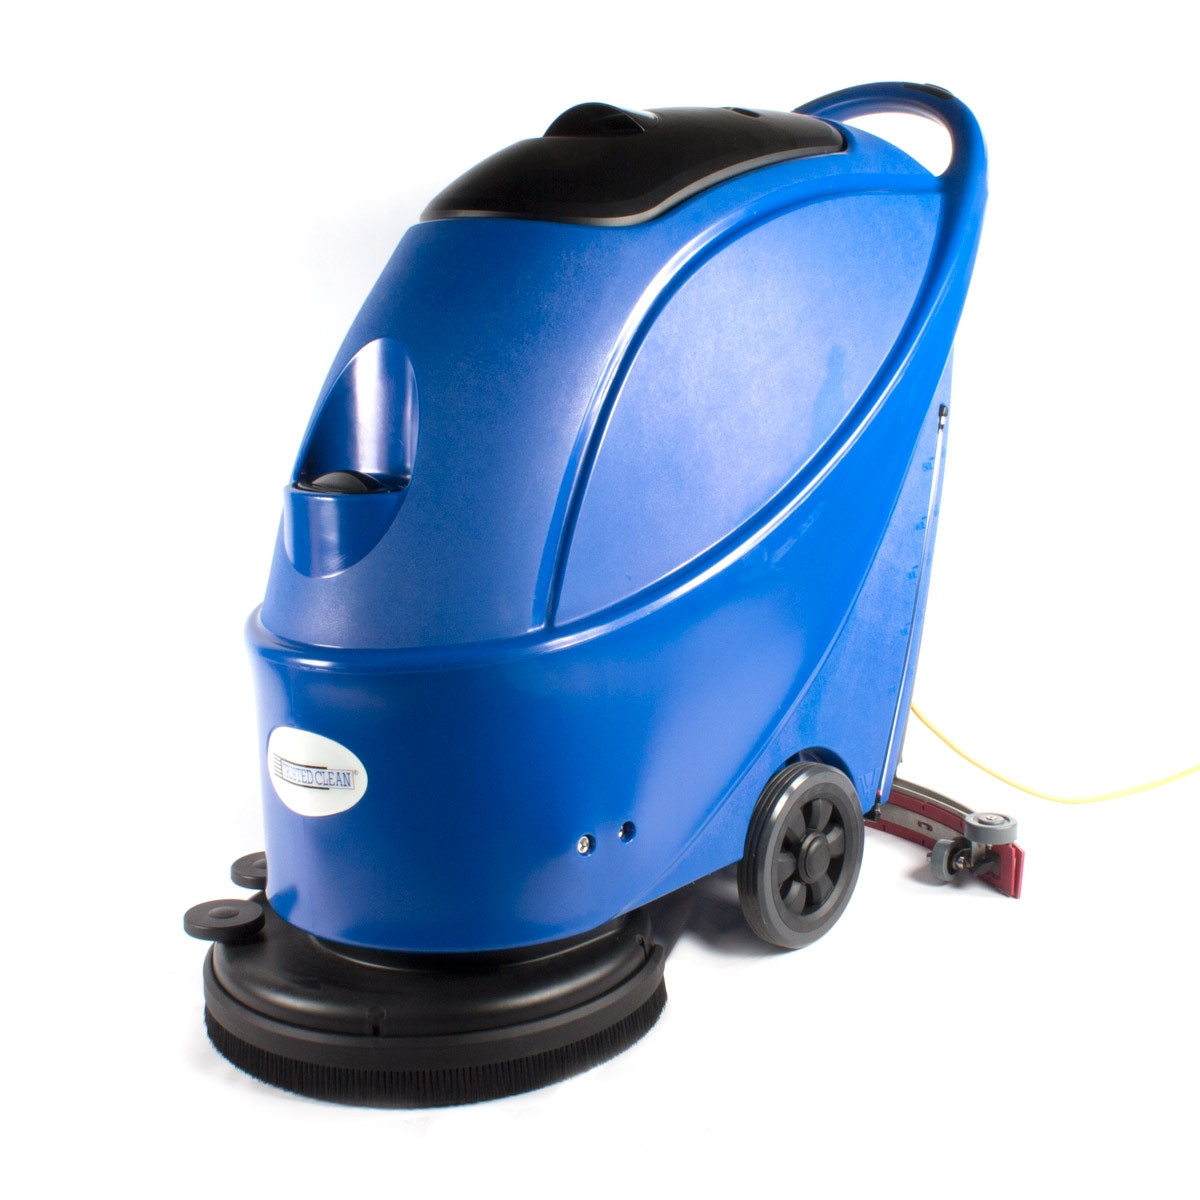 17 Inch Electric Automatic Floor Scrubber Buy The